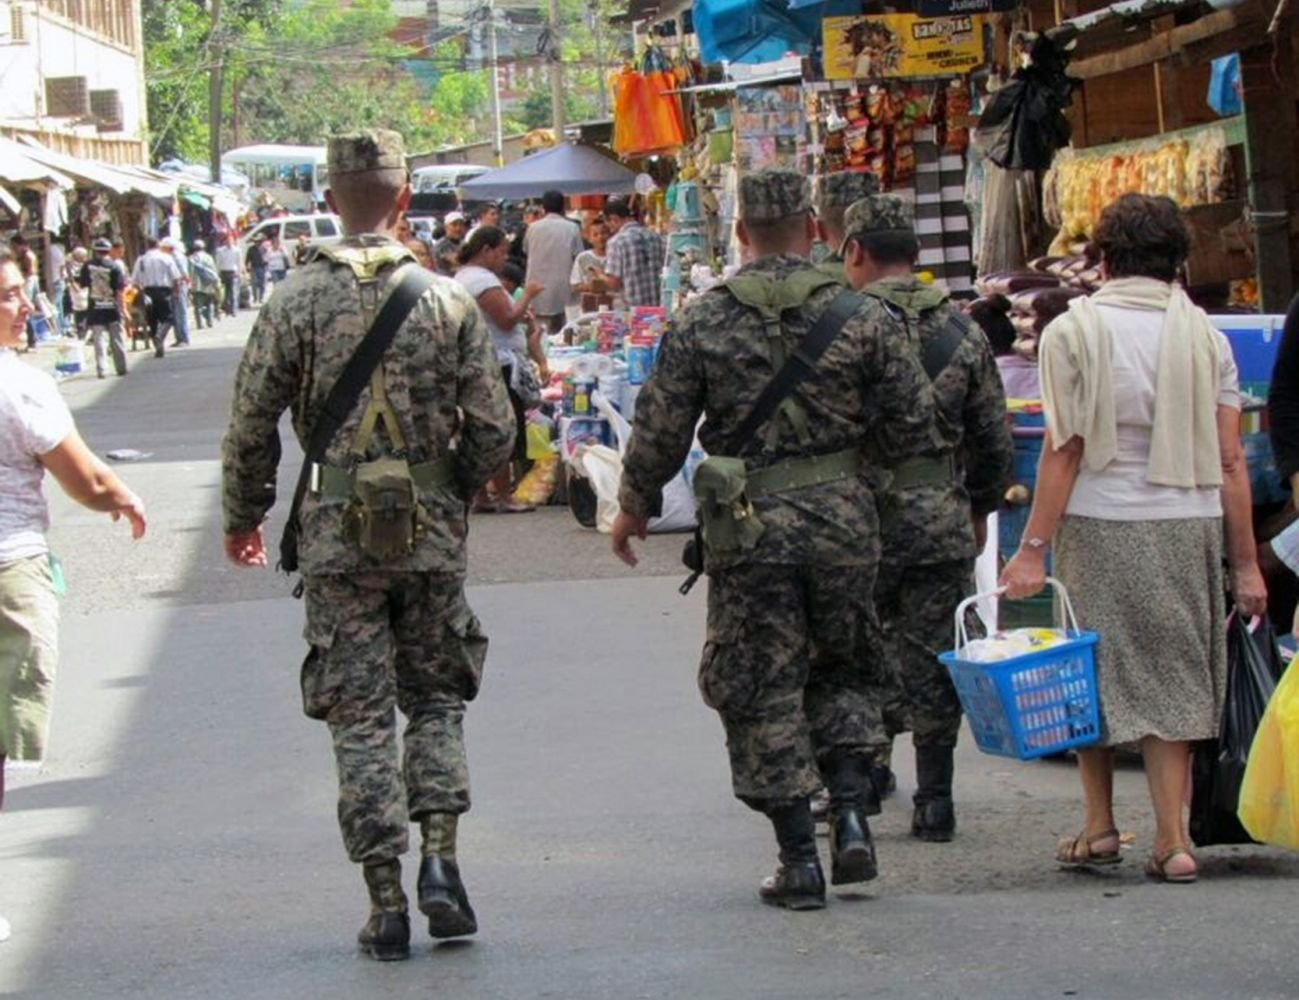 Honduran Armed Forces Cooperate with Police to Reduce Violence